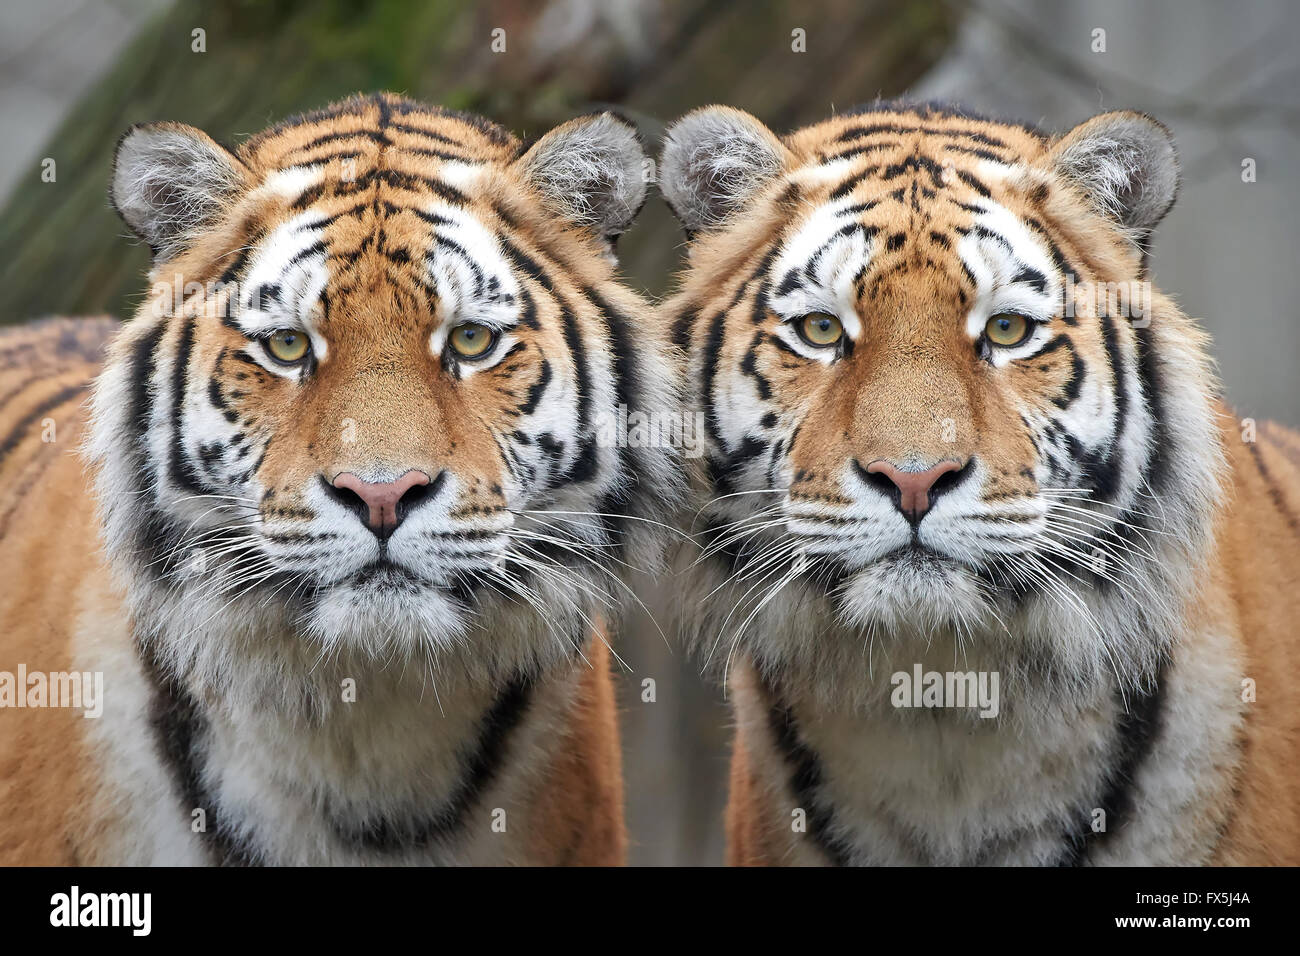 Closeup image of two Amur tigers standing side by side - Stock Image